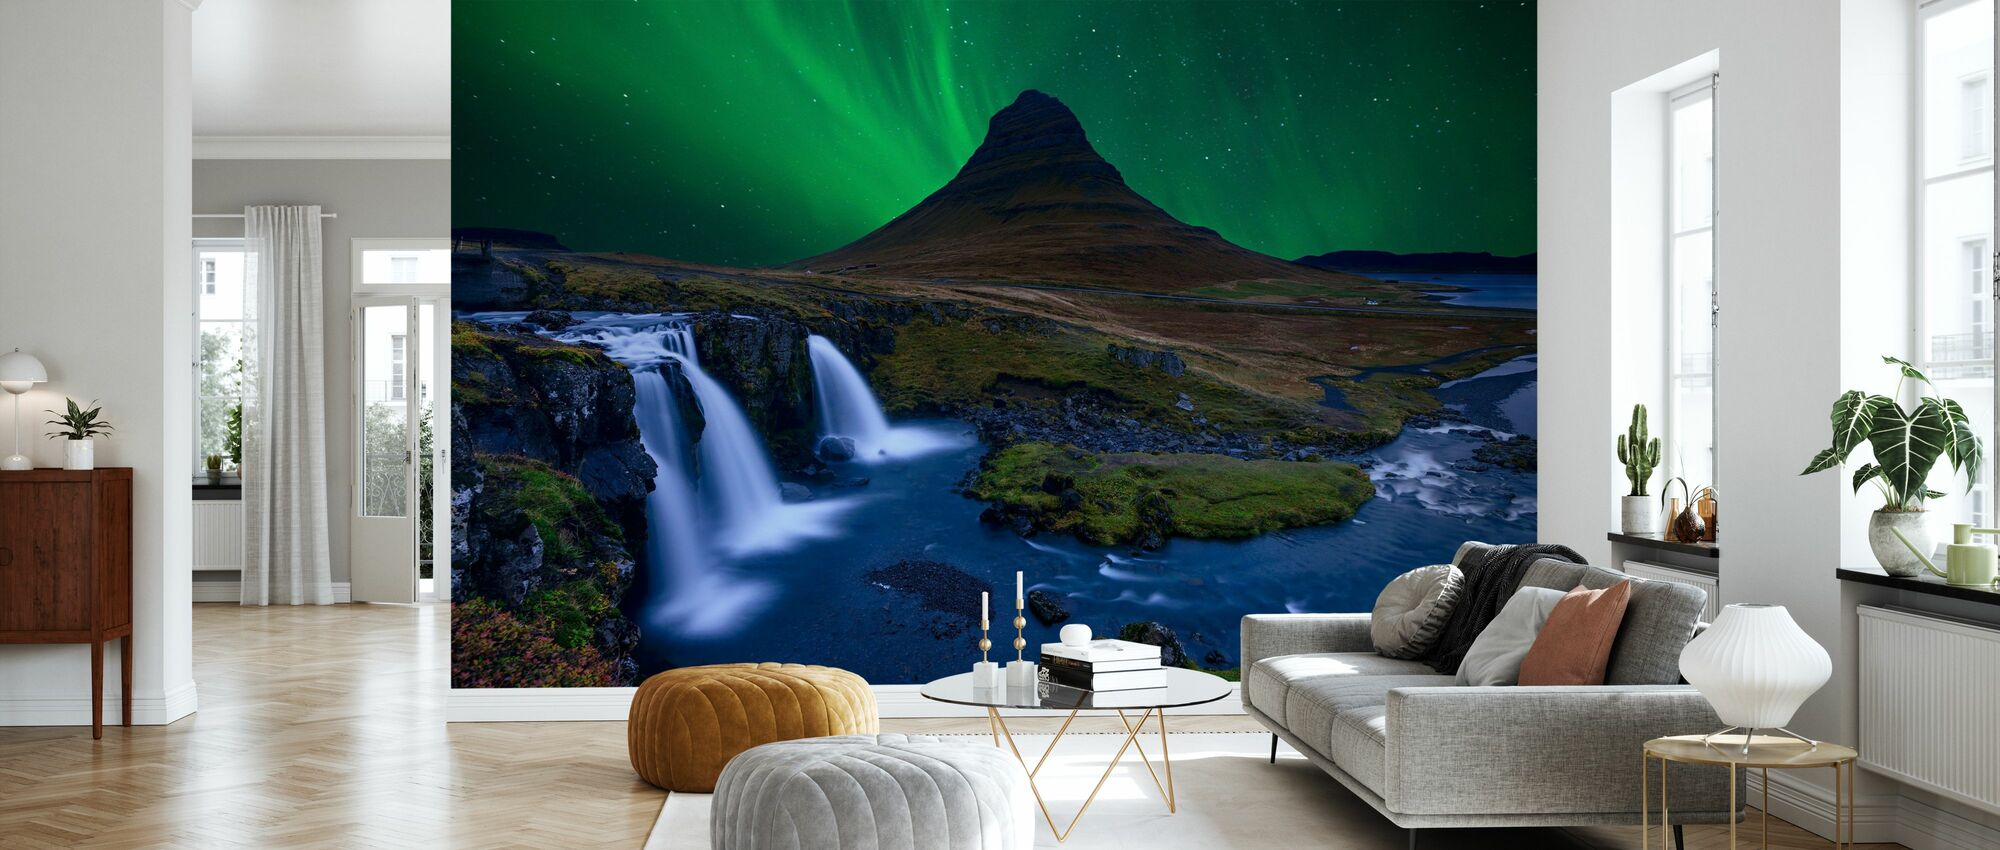 Kirkju Fell Under a Boreal Green Sky - Wallpaper - Living Room